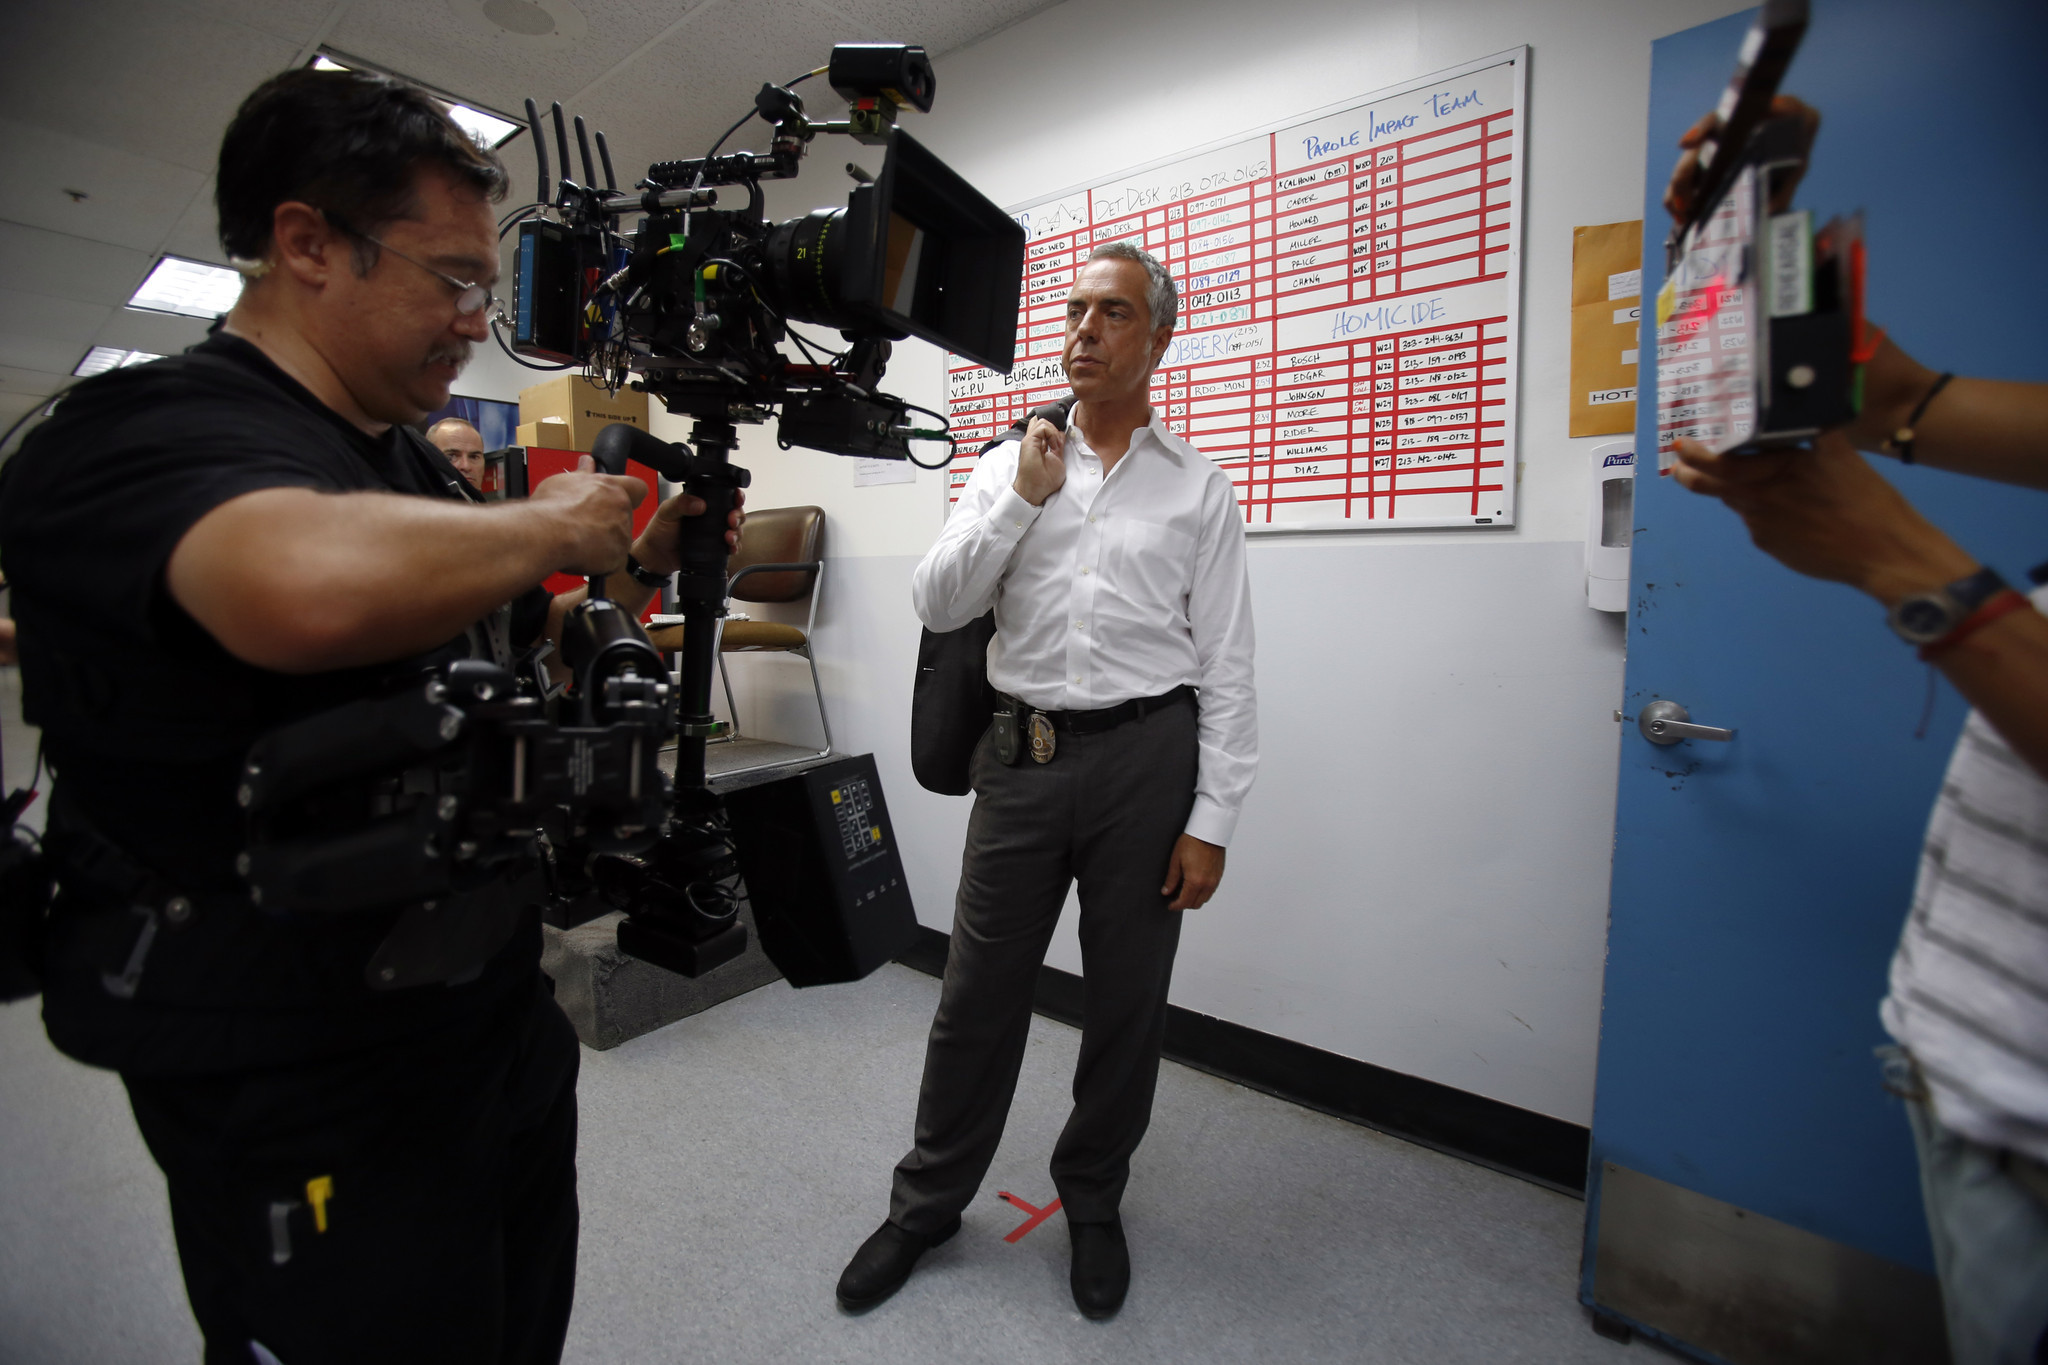 Steady cam operator Kenji Luster, left, and actor Titus Welliver, who plays Det. Harry Bosch, work on set in Hollywood.